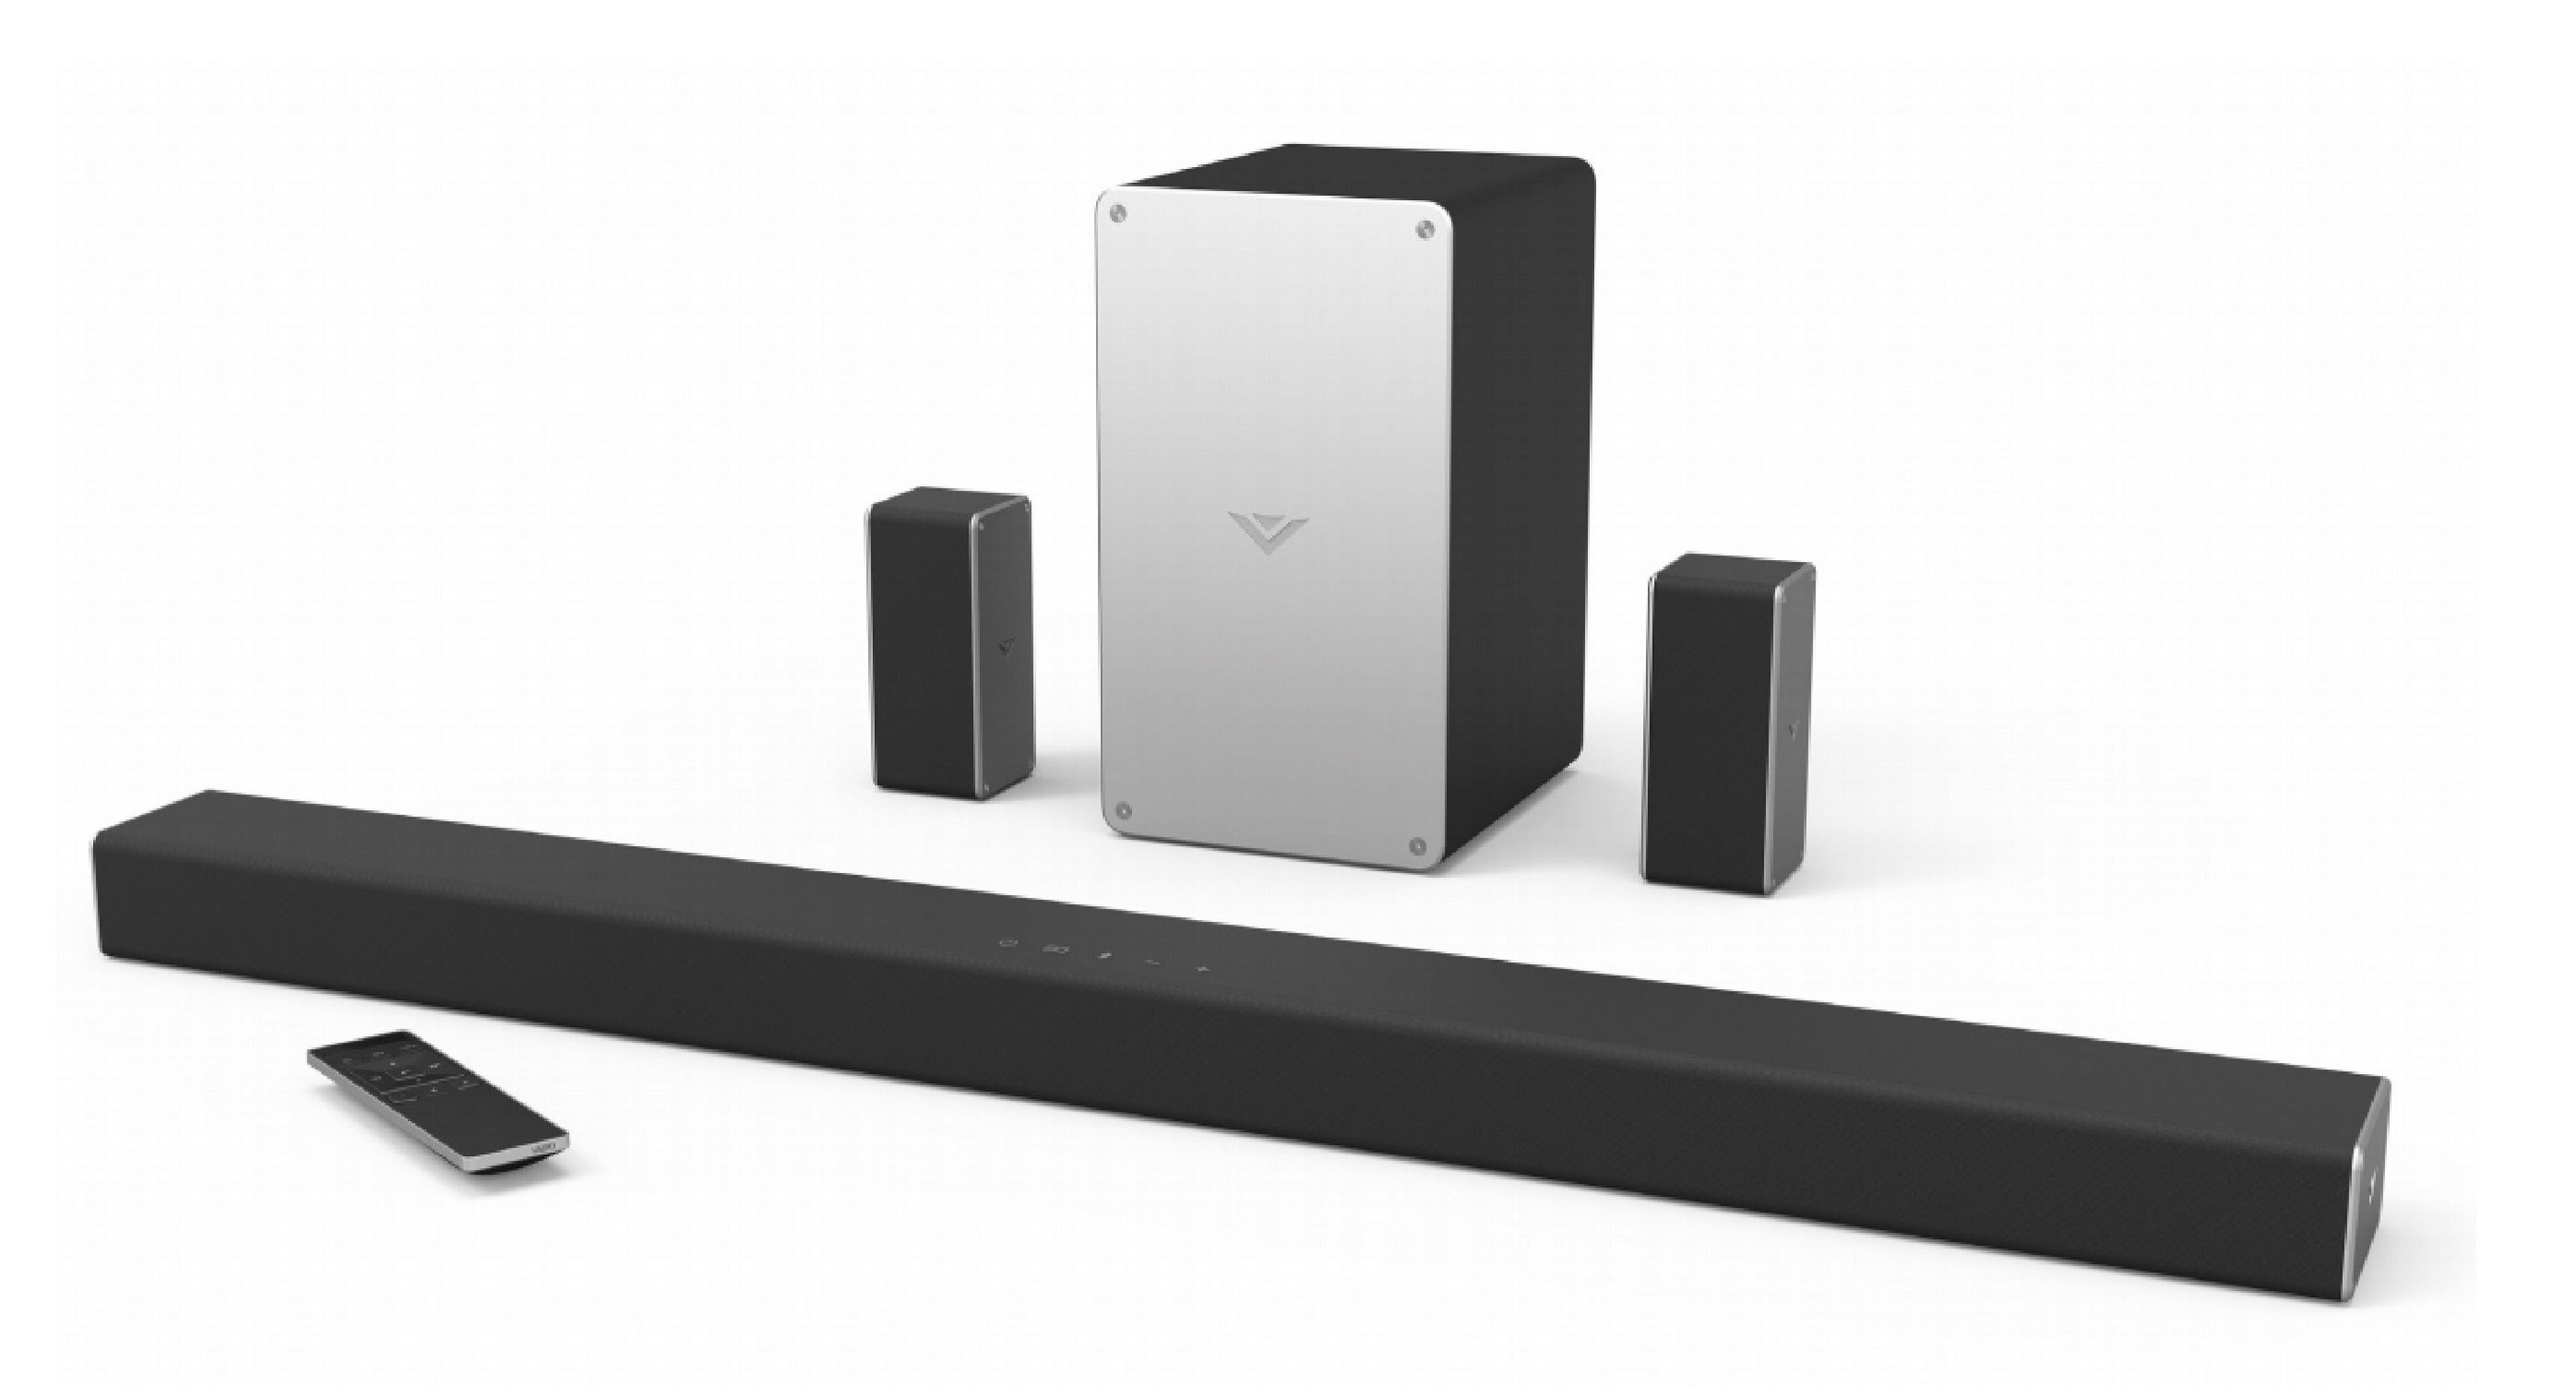 Vizio SmartCast Sound Bar (model SB3651-E6) review: The high-tech ...